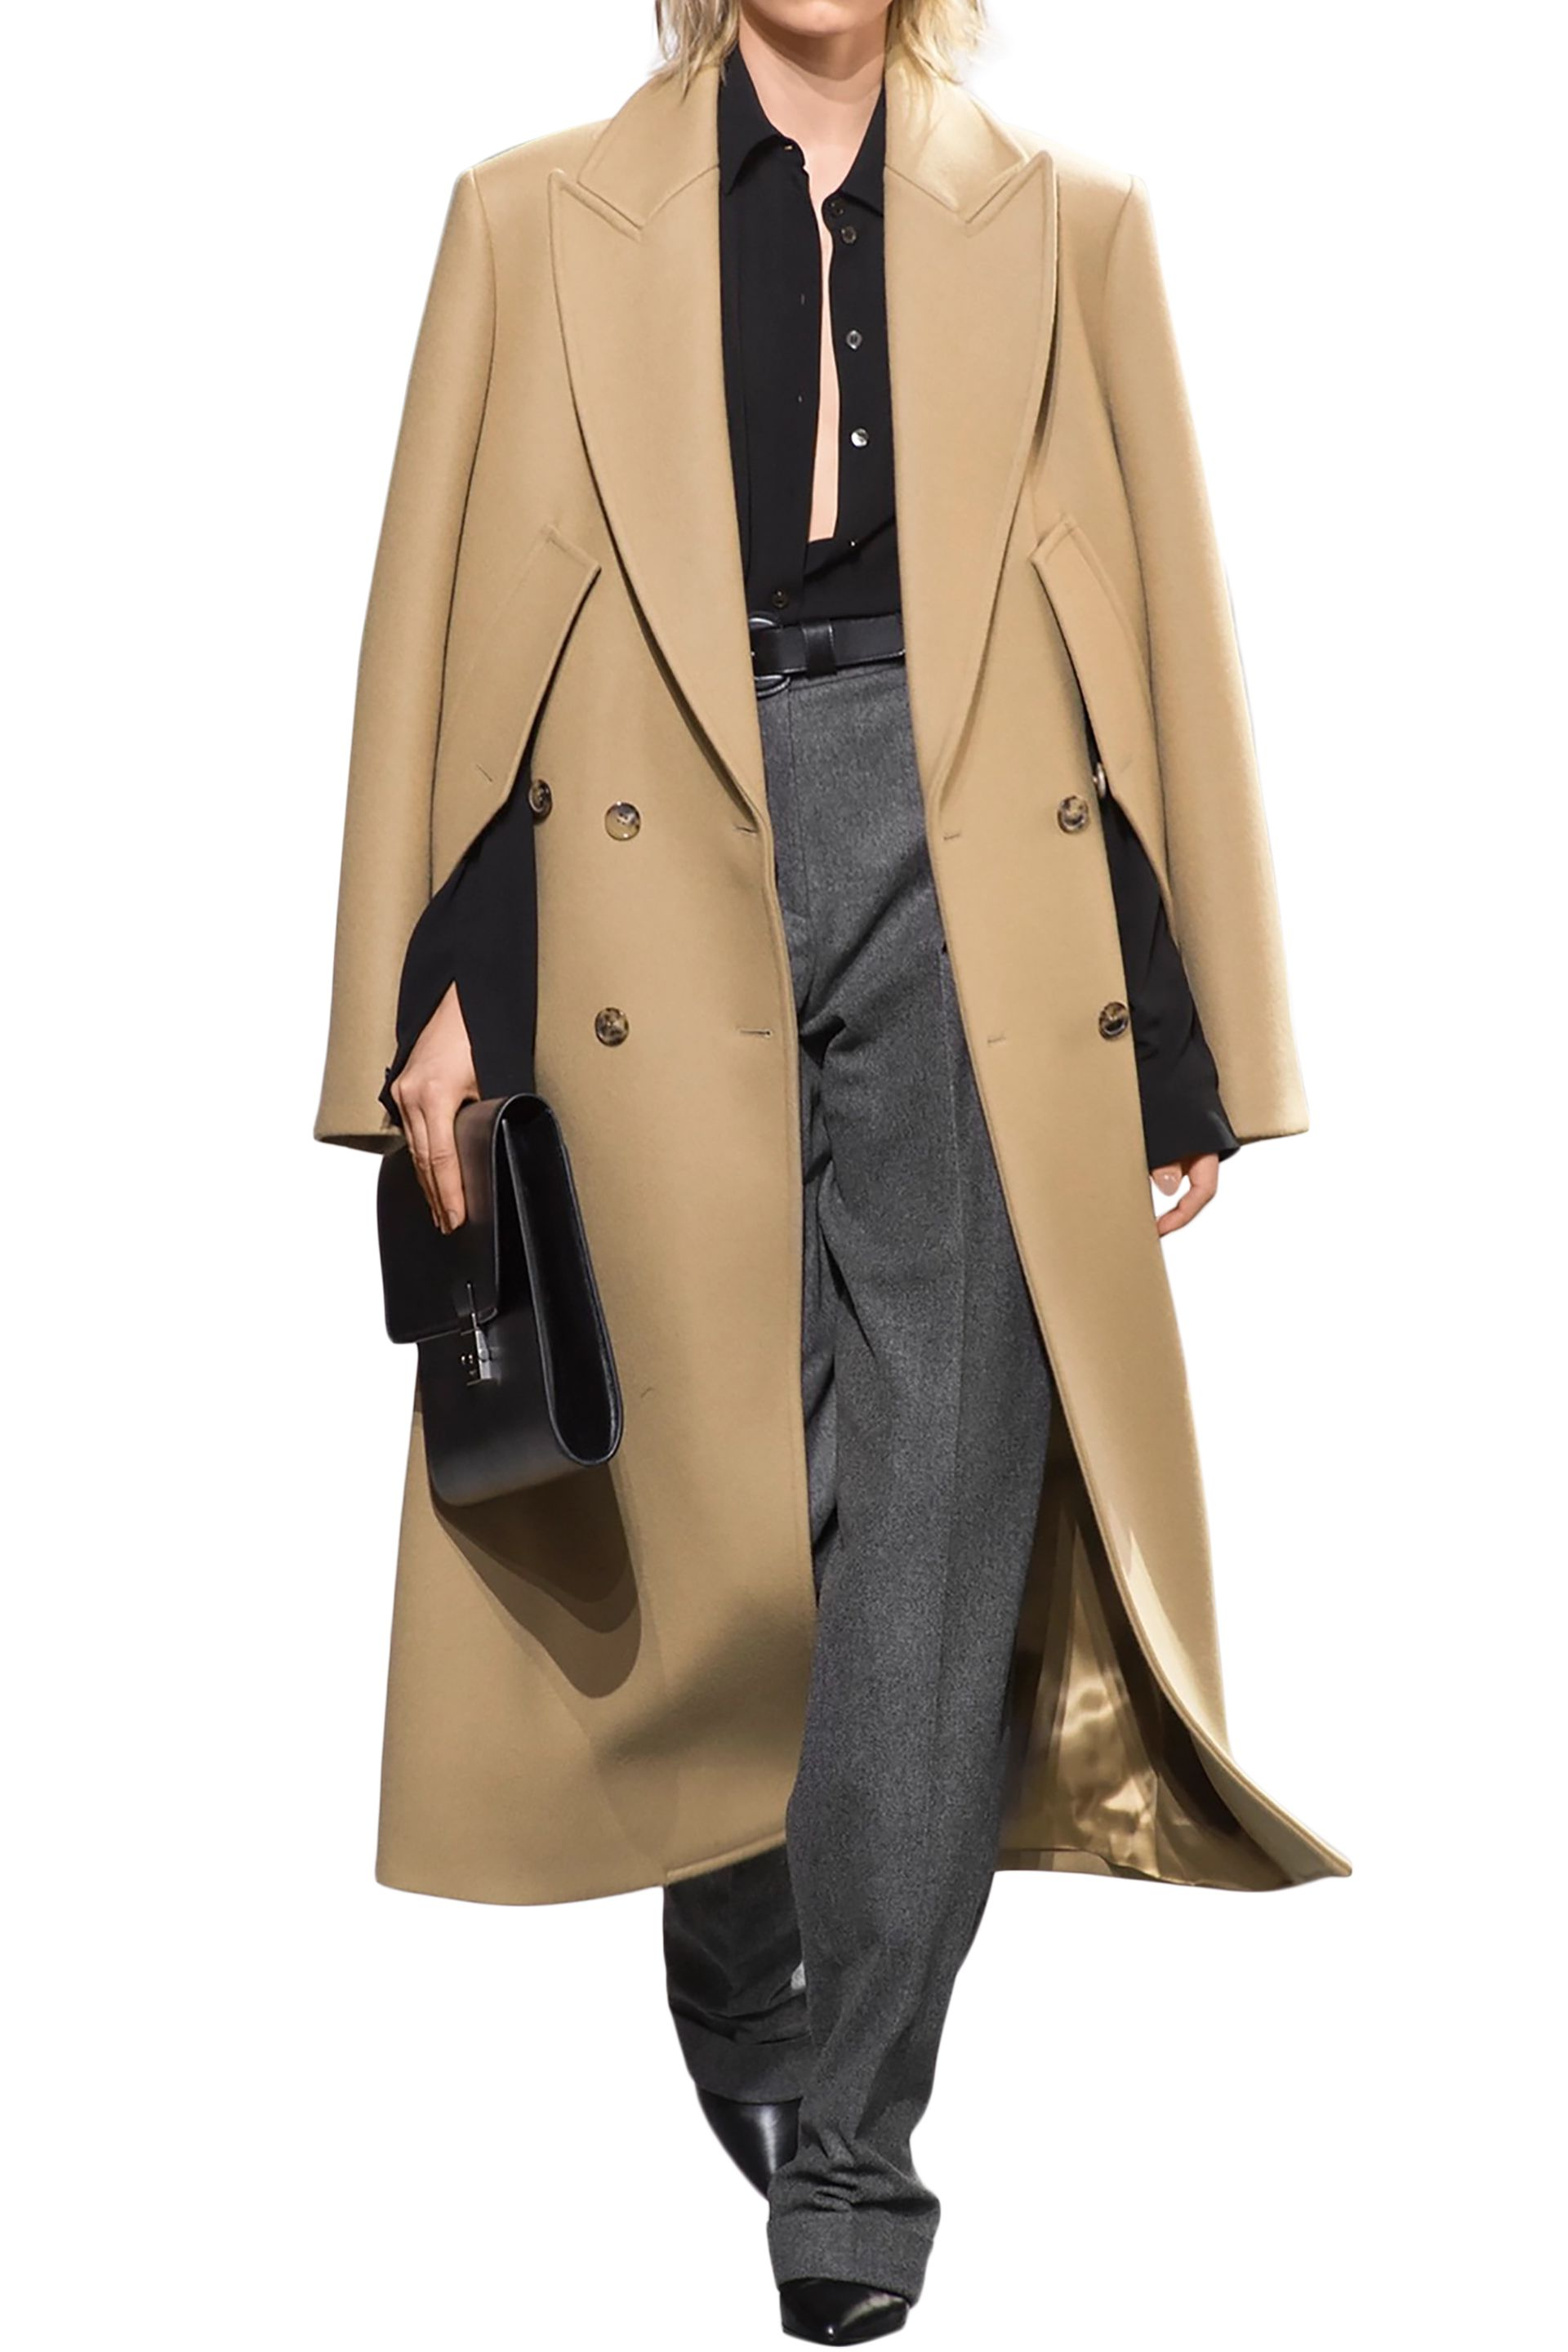 Michael Kors Collection   Sale up to 70% off   US   THE OUTNET